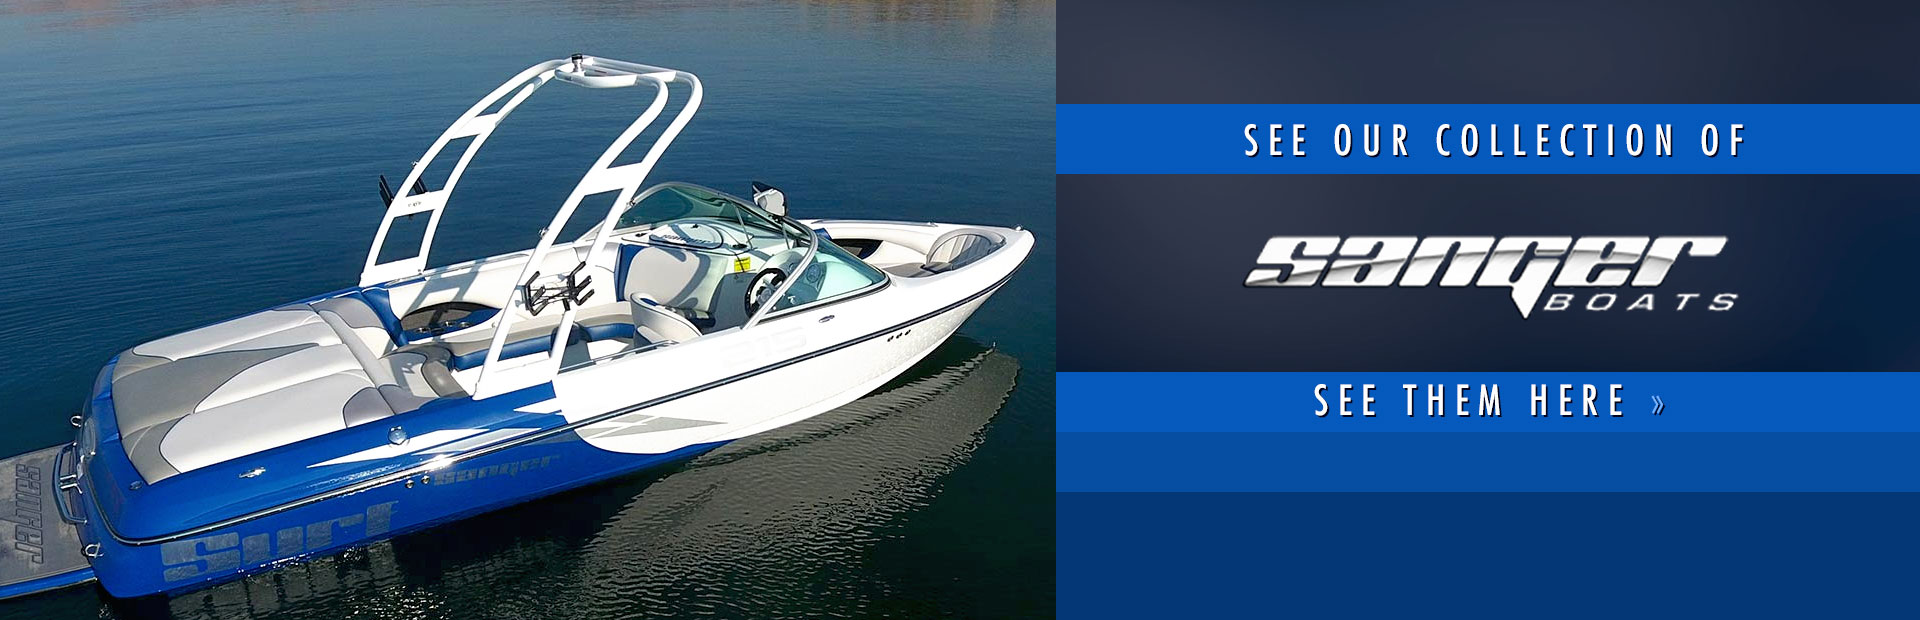 parker boats hook up and go how to do a good online dating profile